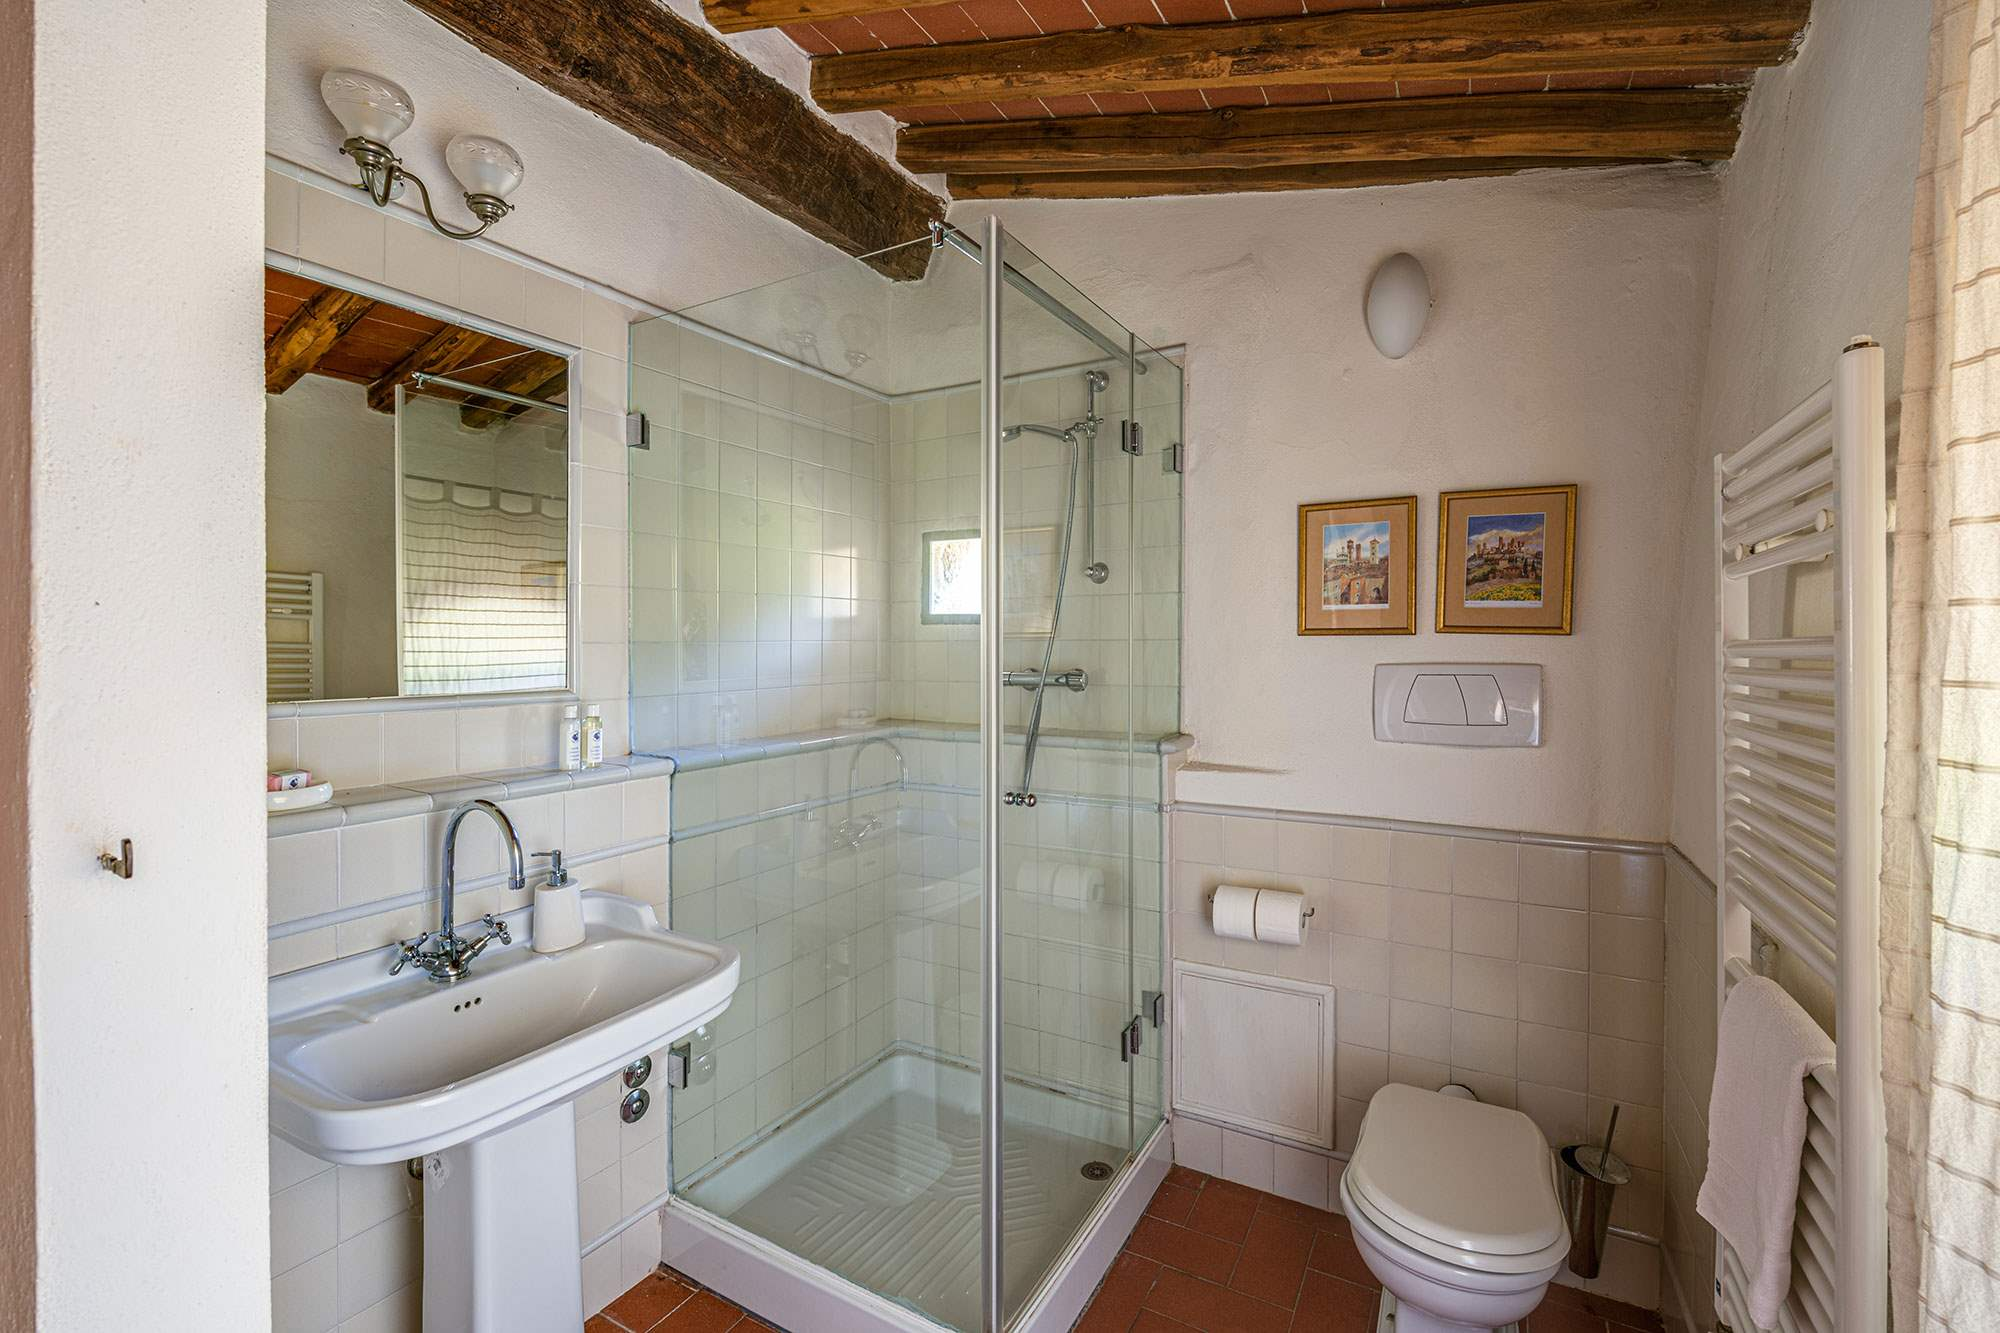 Villa Claudia, 5 Bedroom rate, 5 bedroom villa in Chianti & Countryside, Tuscany Photo #23